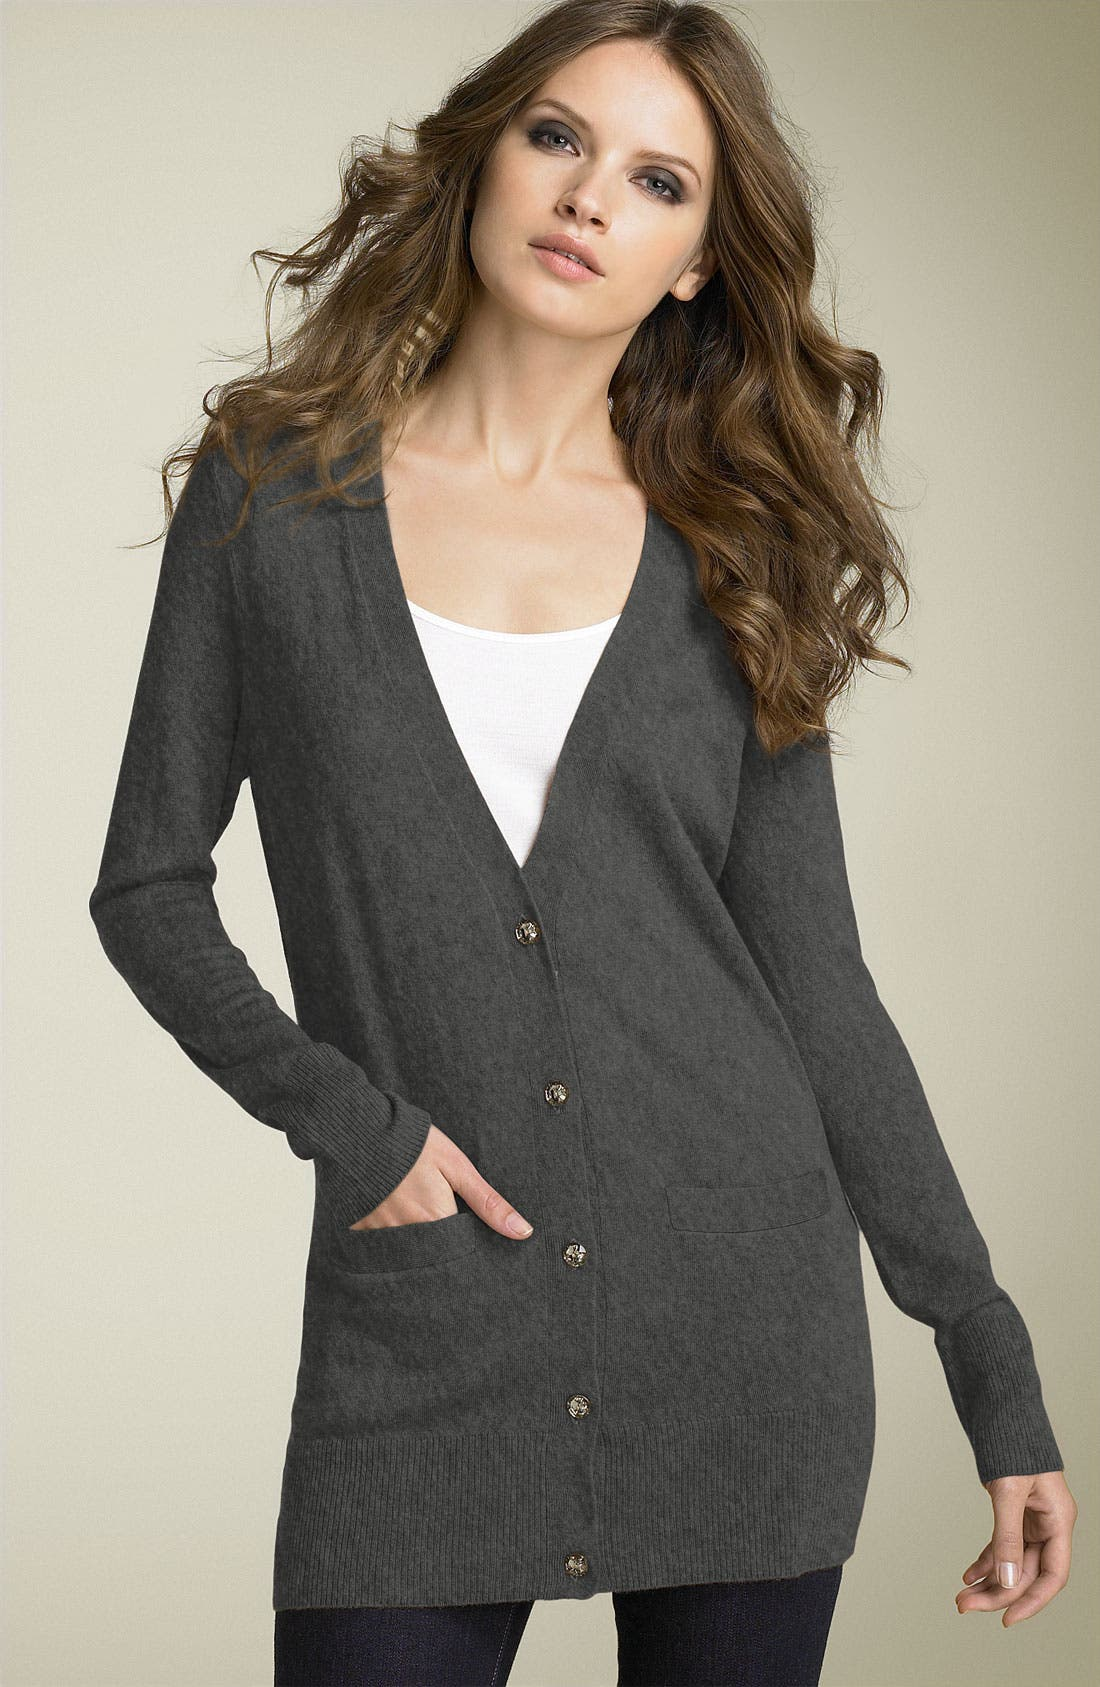 Main Image - Joie 'Chasity' Cashmere Blend Cardigan